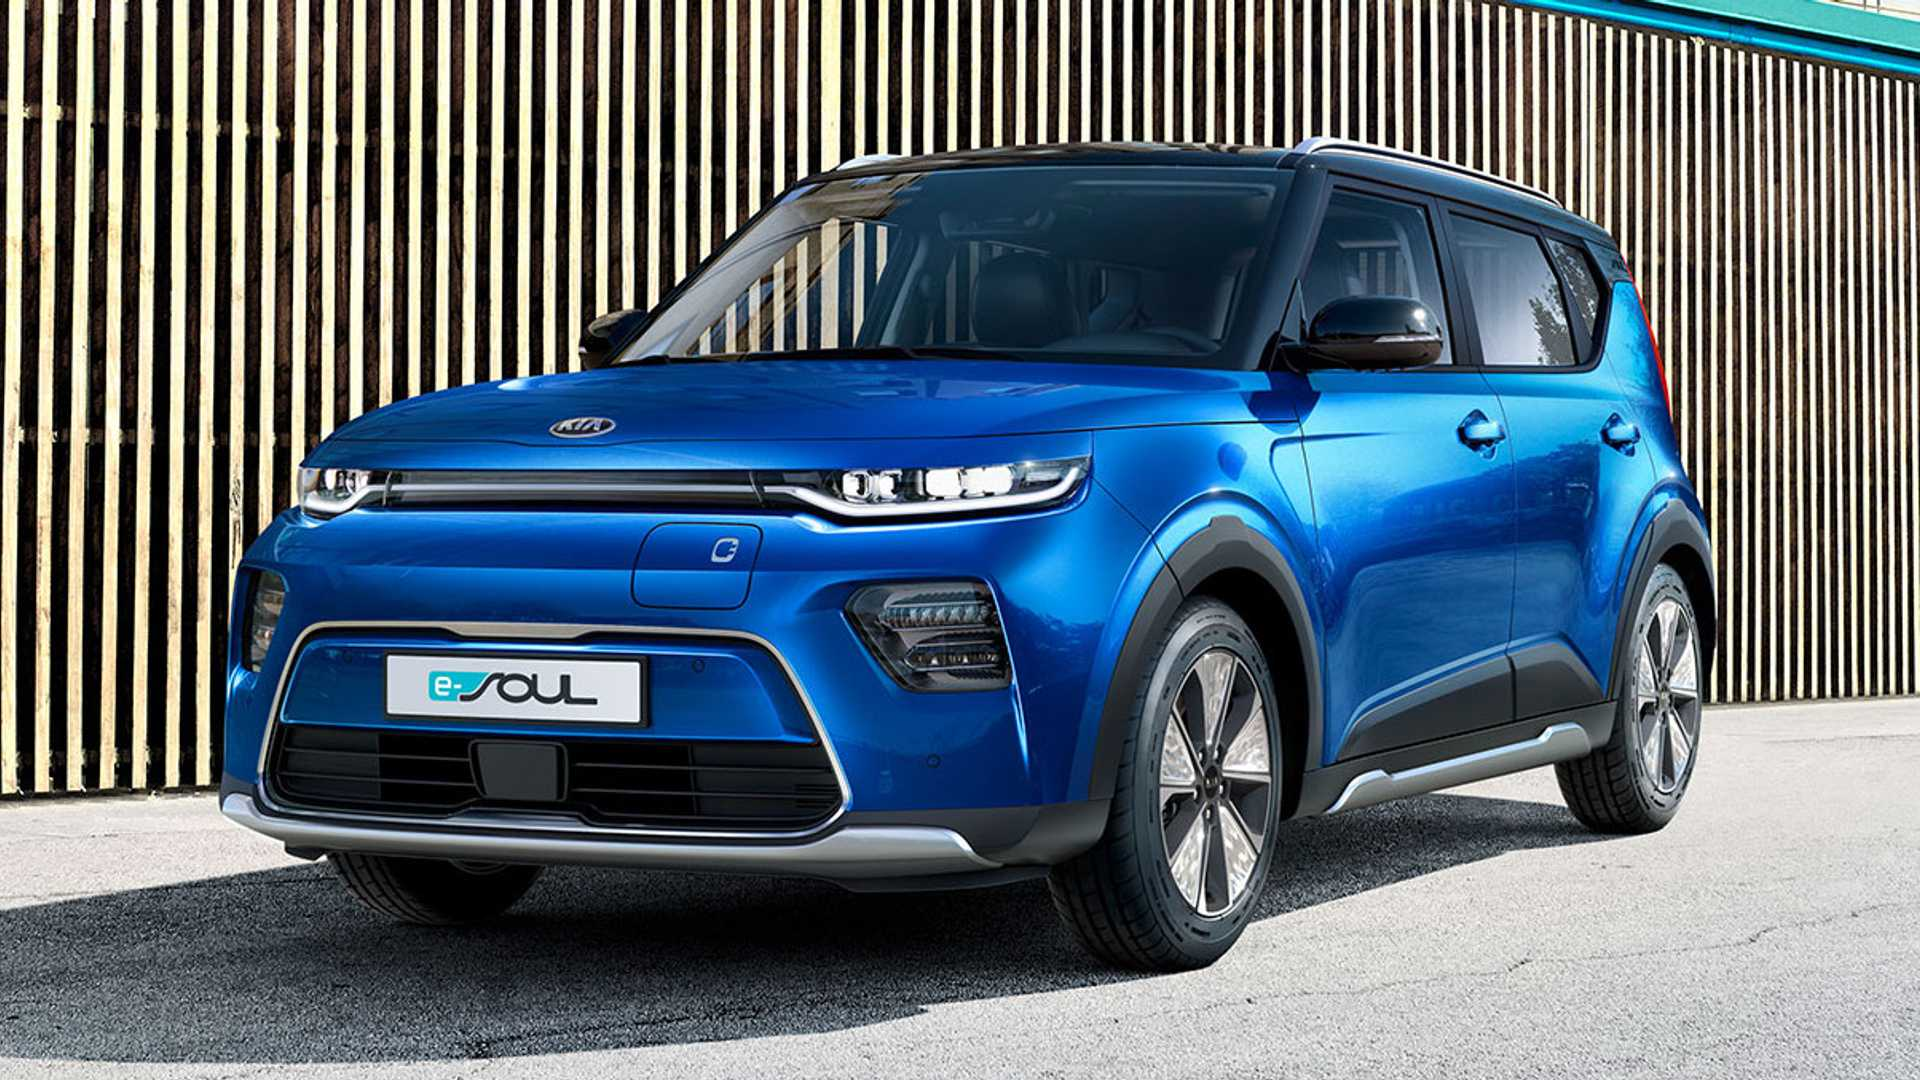 New Kia Soul Will Be Electric Only In Europe